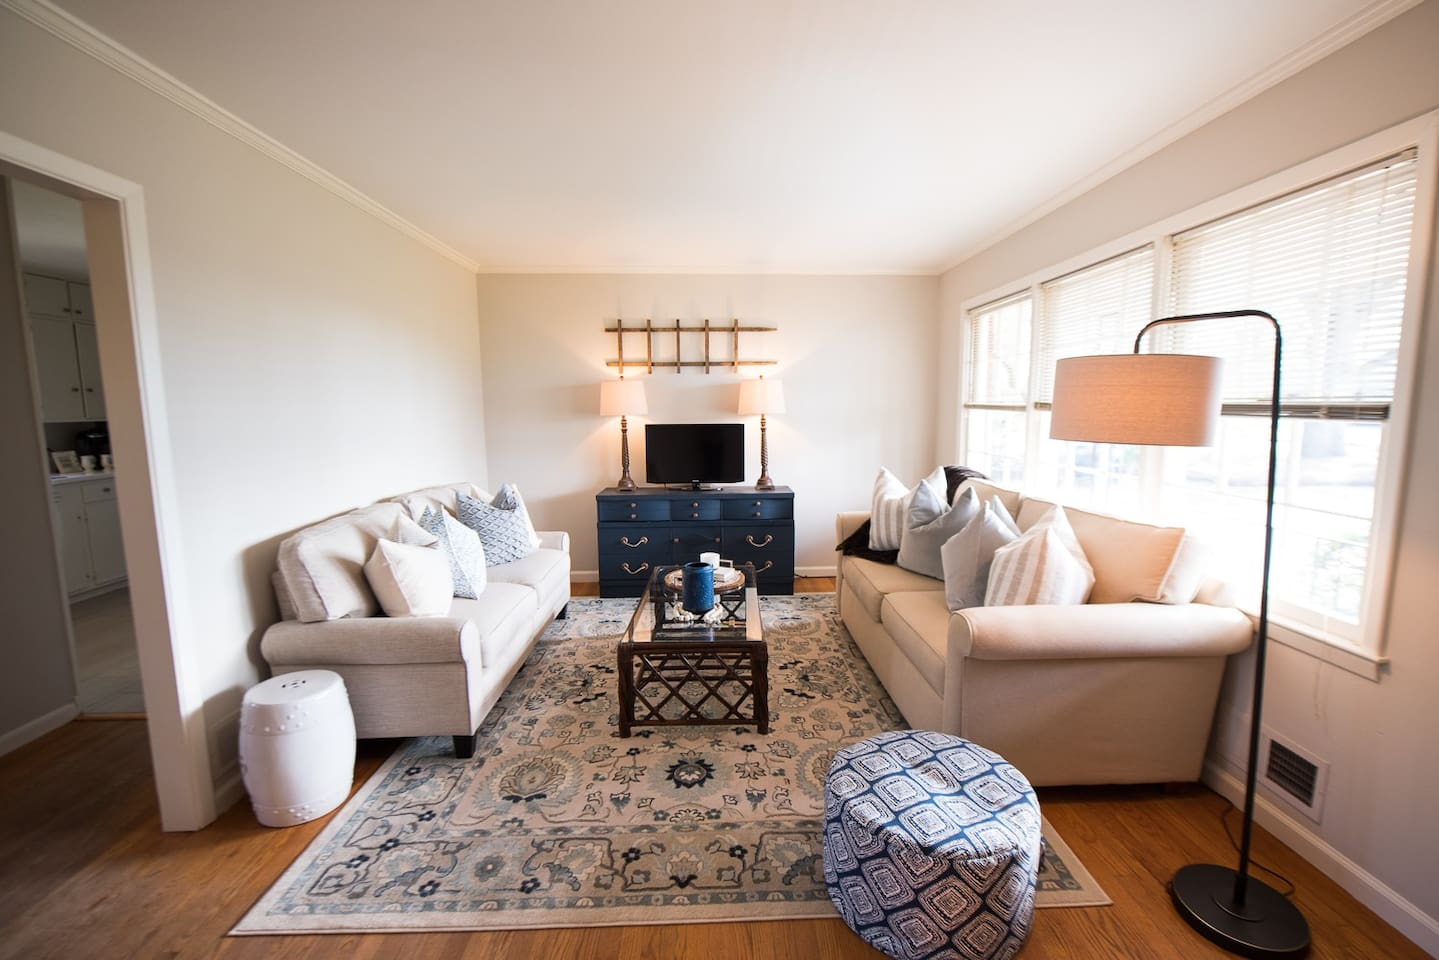 Living room offers plenty of seating in a bright & airy space. The Smart TV offers YouTube TV for access to live, local channels, as well as your favorite entertainment apps (Netflix, Hulu, etc.).